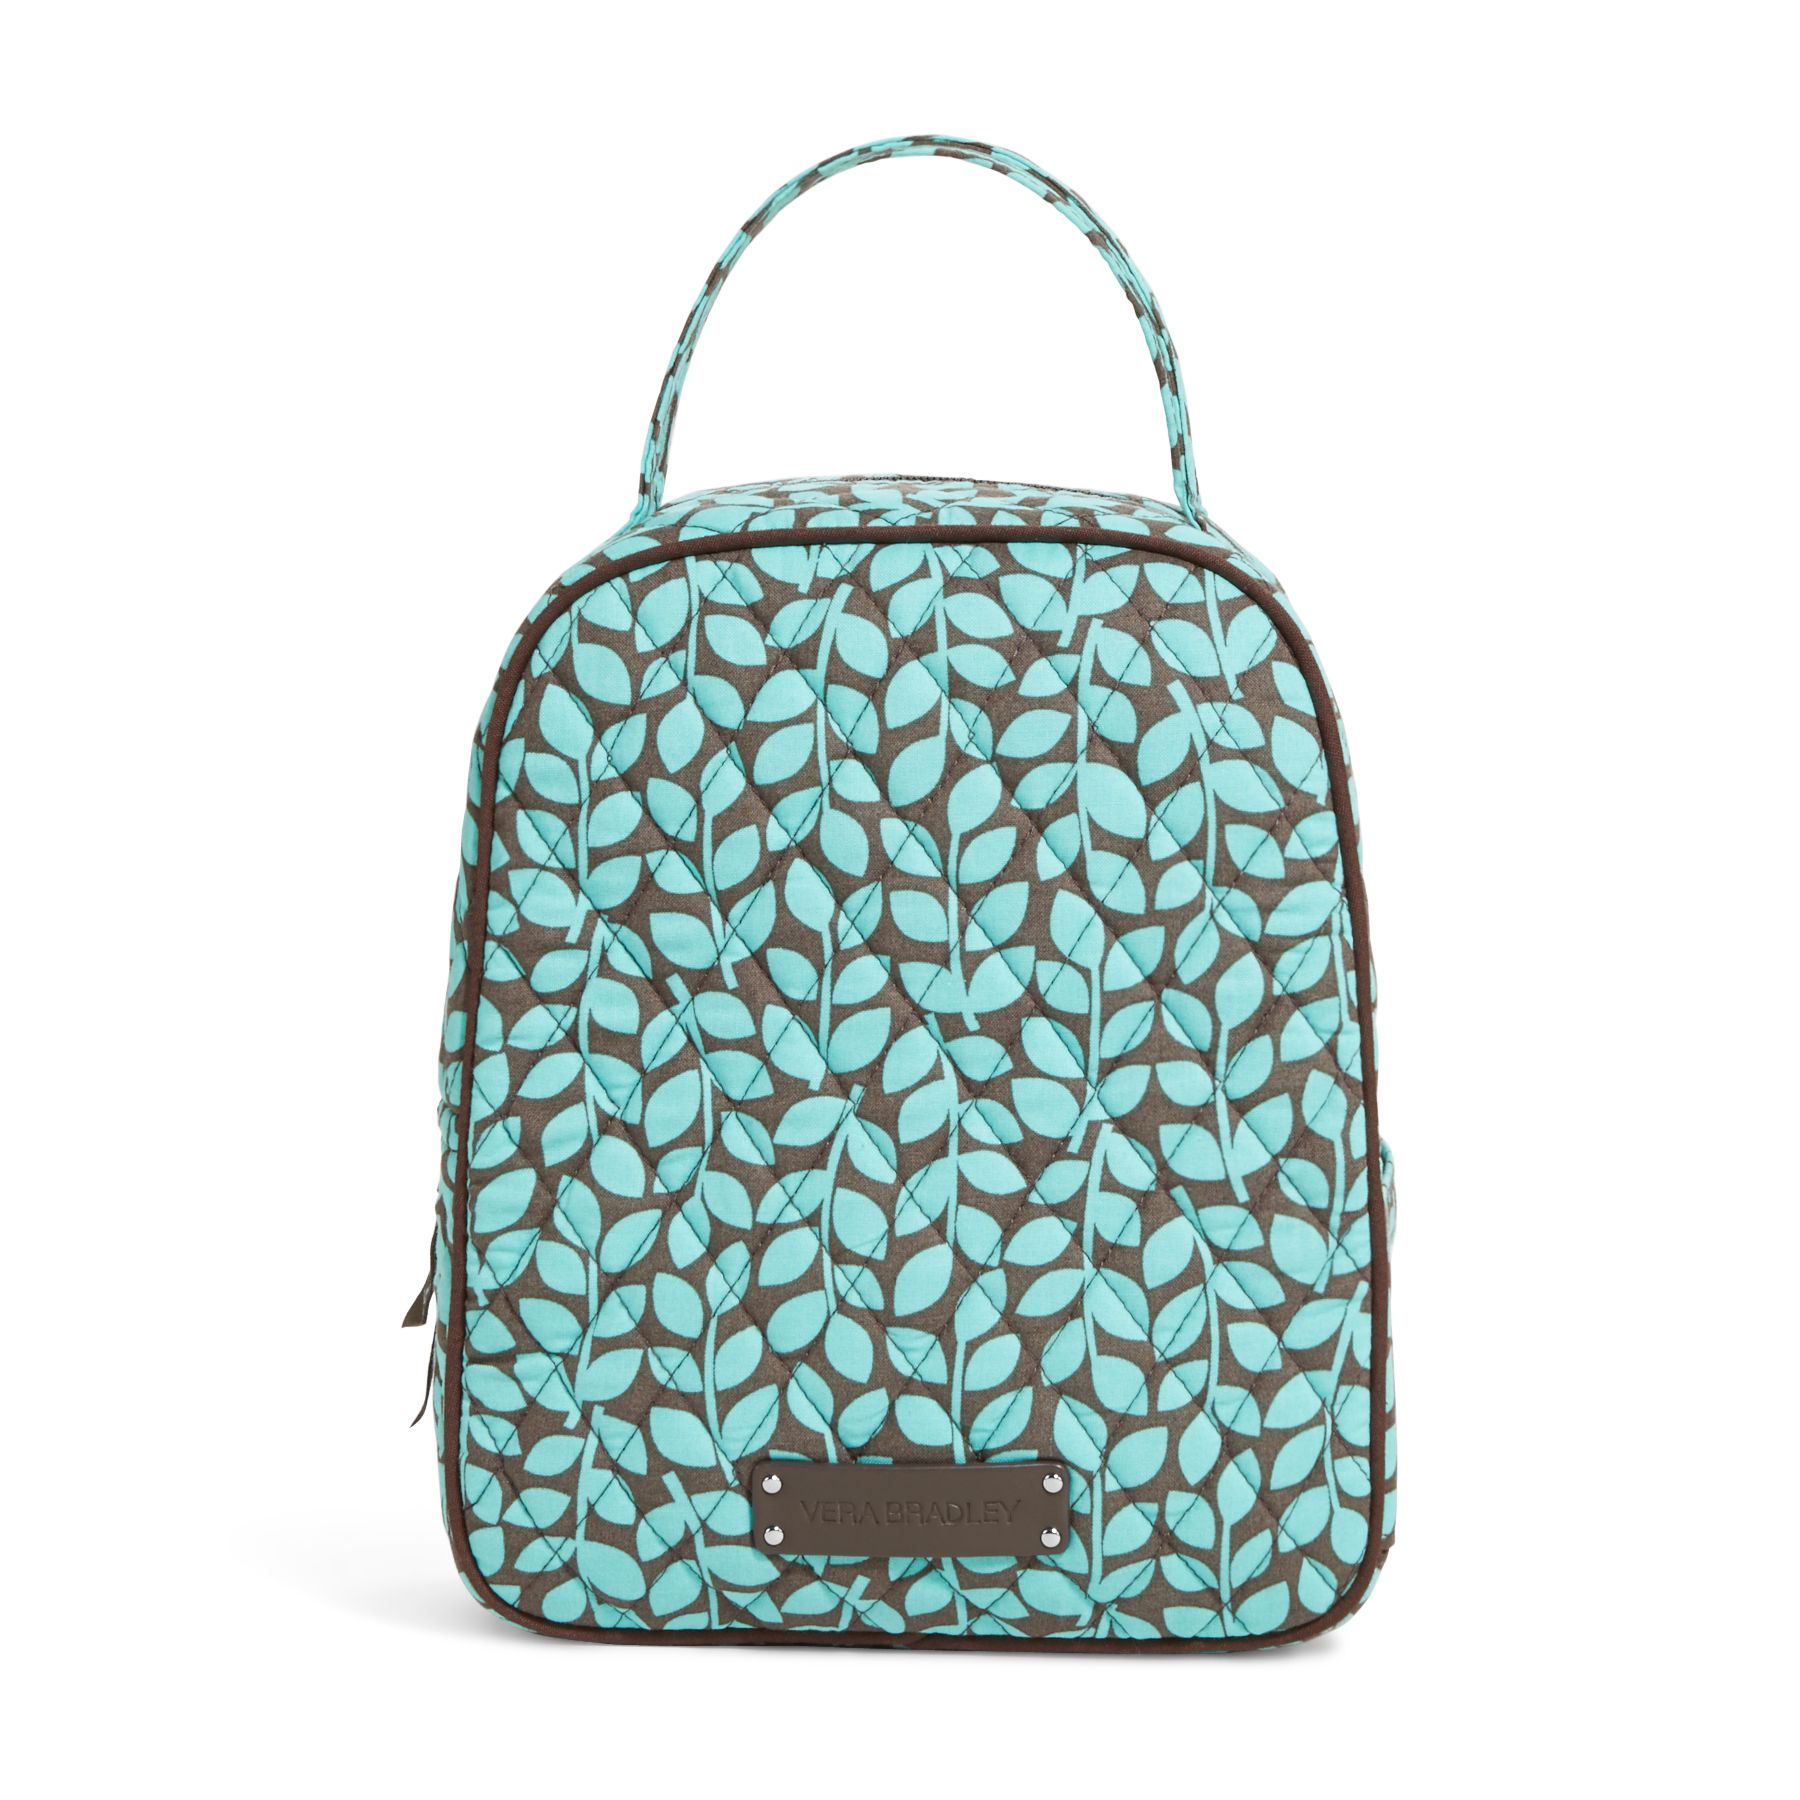 Vera Bradley Lunch Bunch Bag in Shower Vines